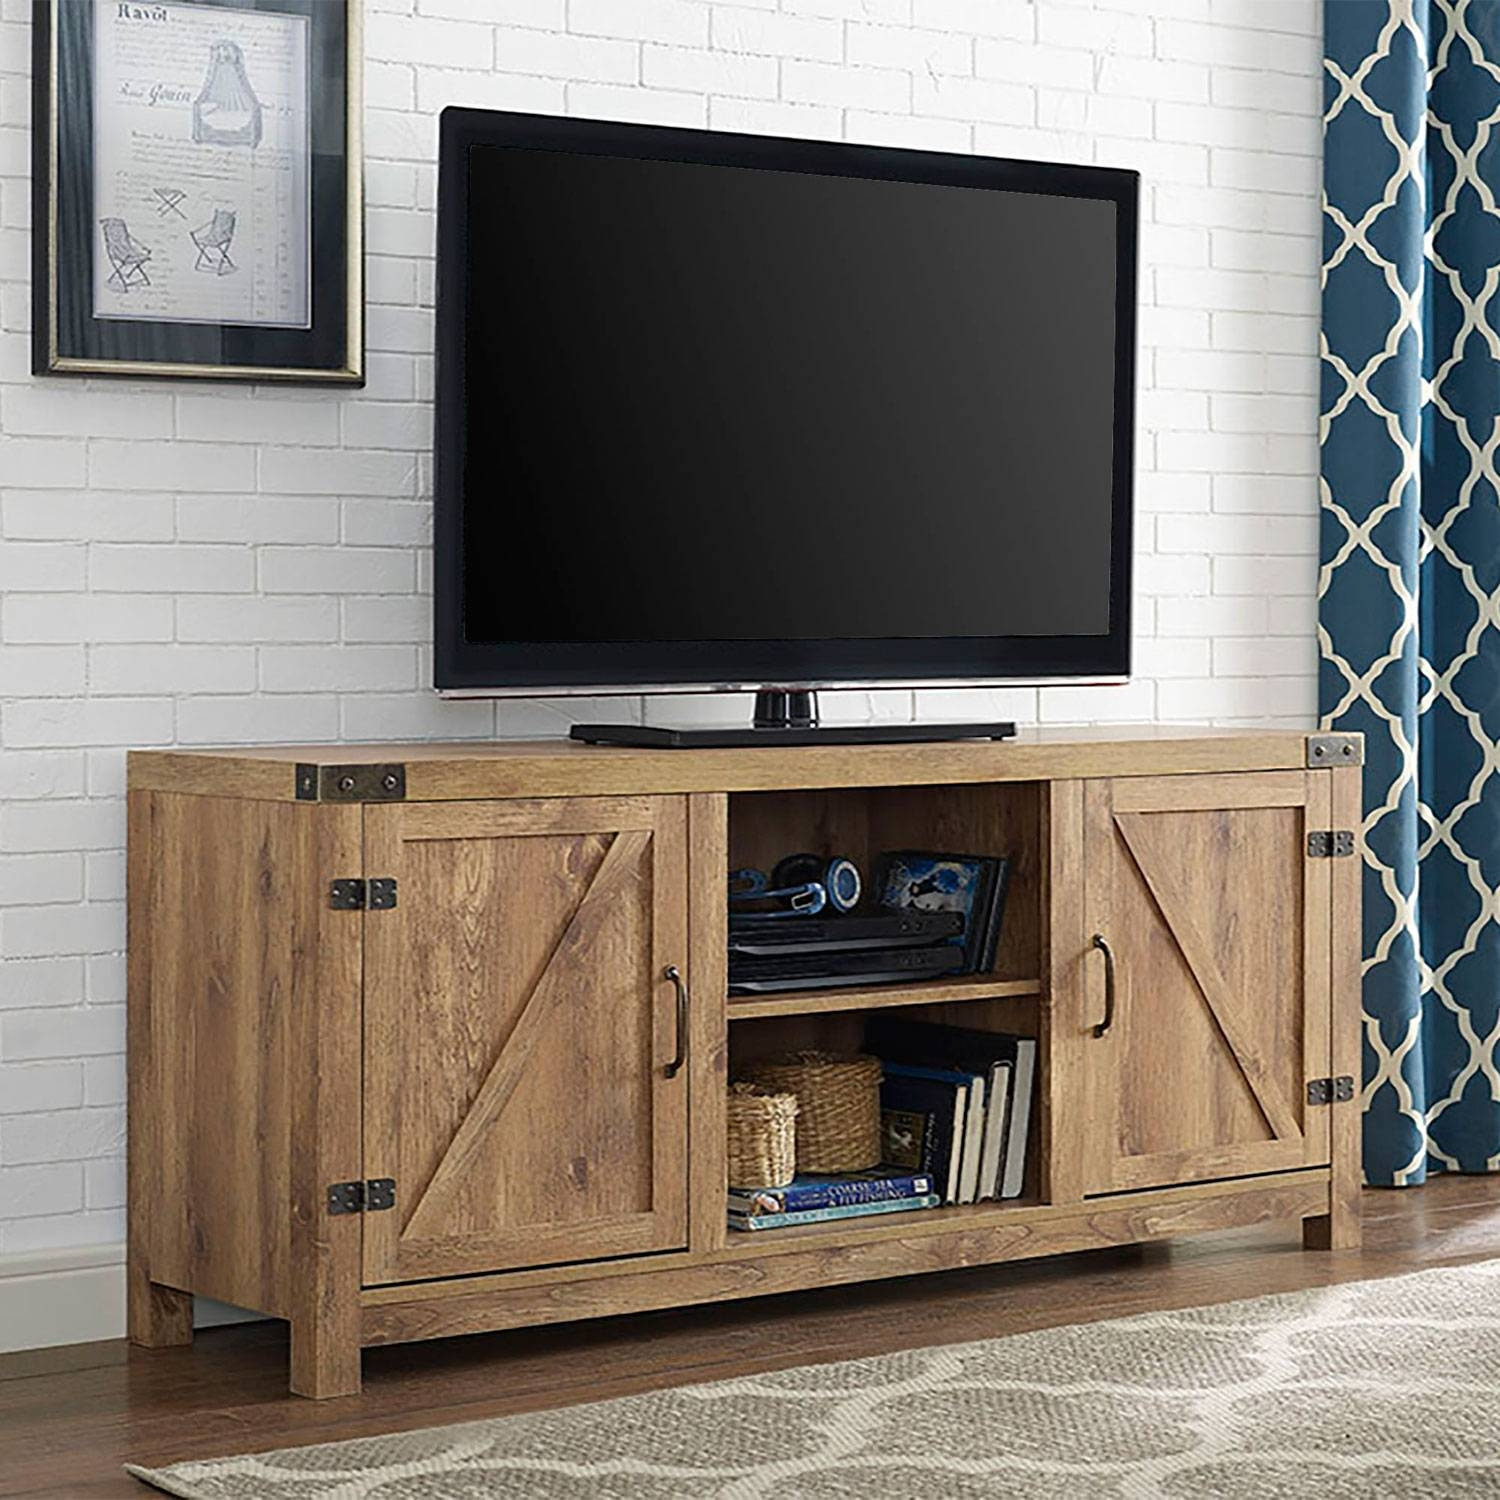 Tv Stands & Cabinets On Sale | Bellacor regarding Tv Stands With Baskets (Image 12 of 15)